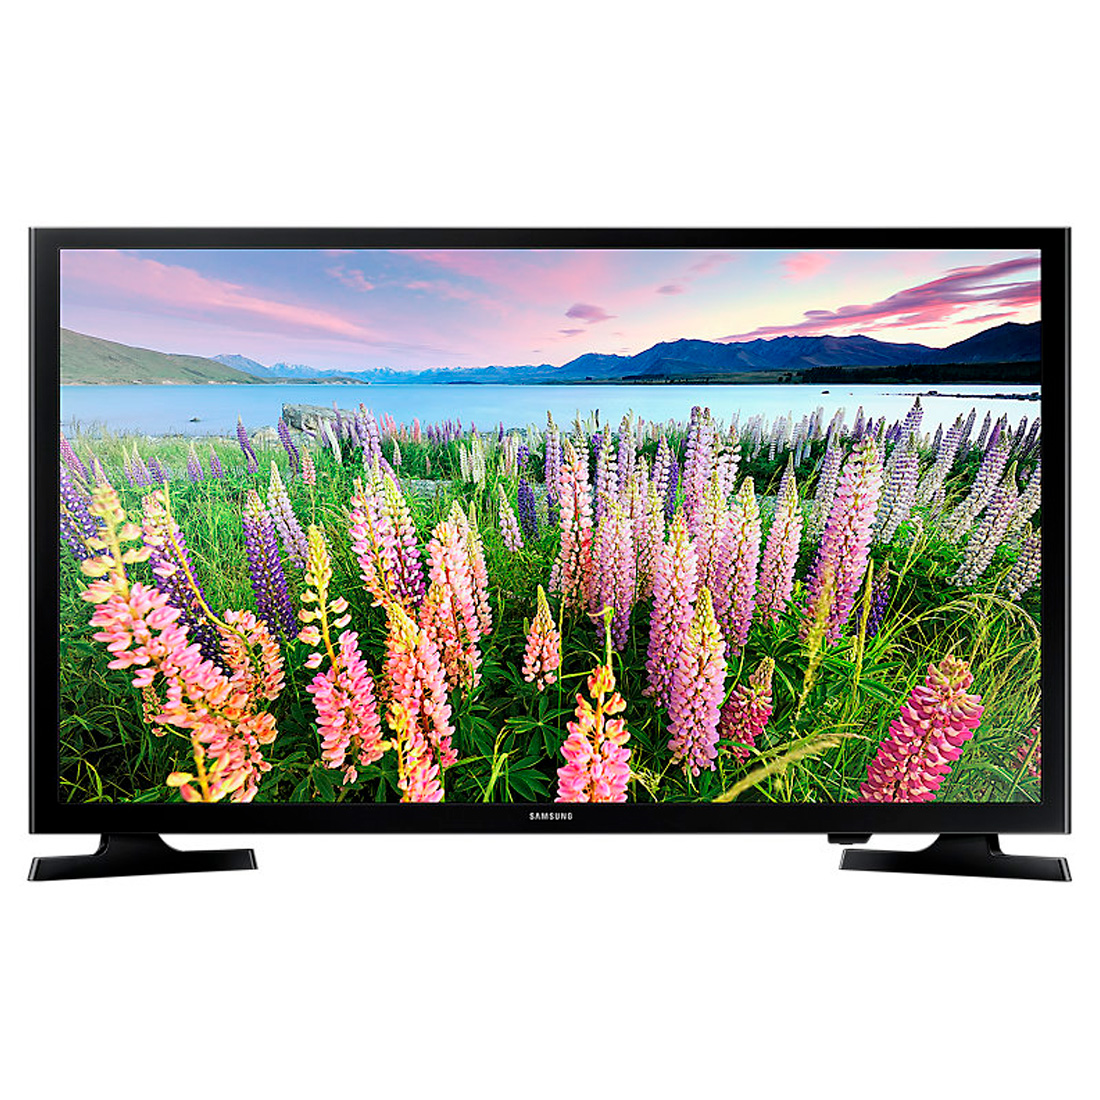 "Smart TV SAMSUNG UN49J5200AHCZE 49"" FHD"